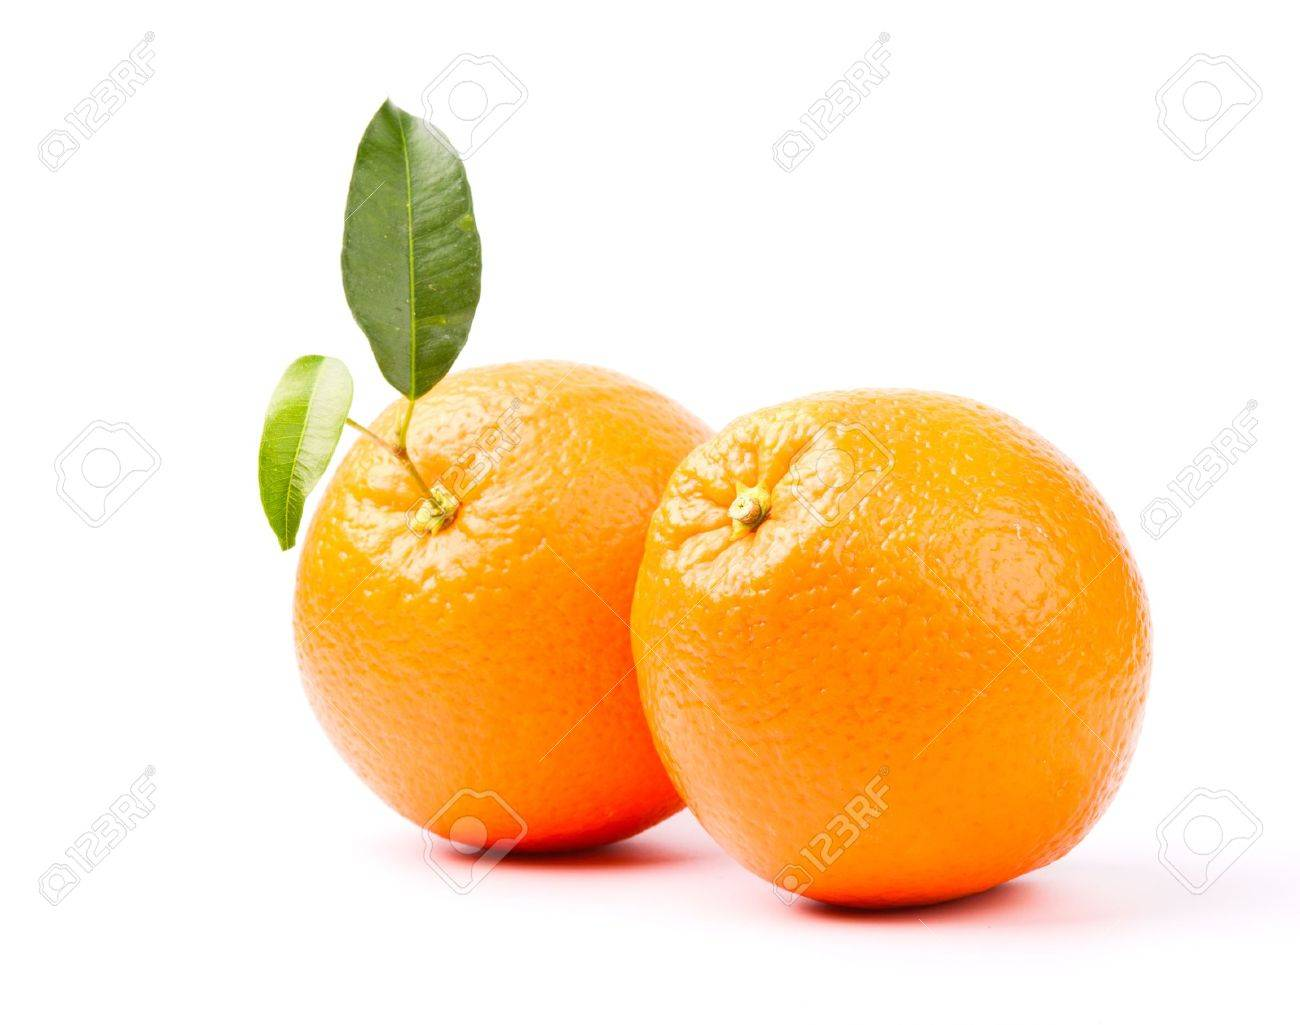 oranges with leaf isolated on white background - 14038630